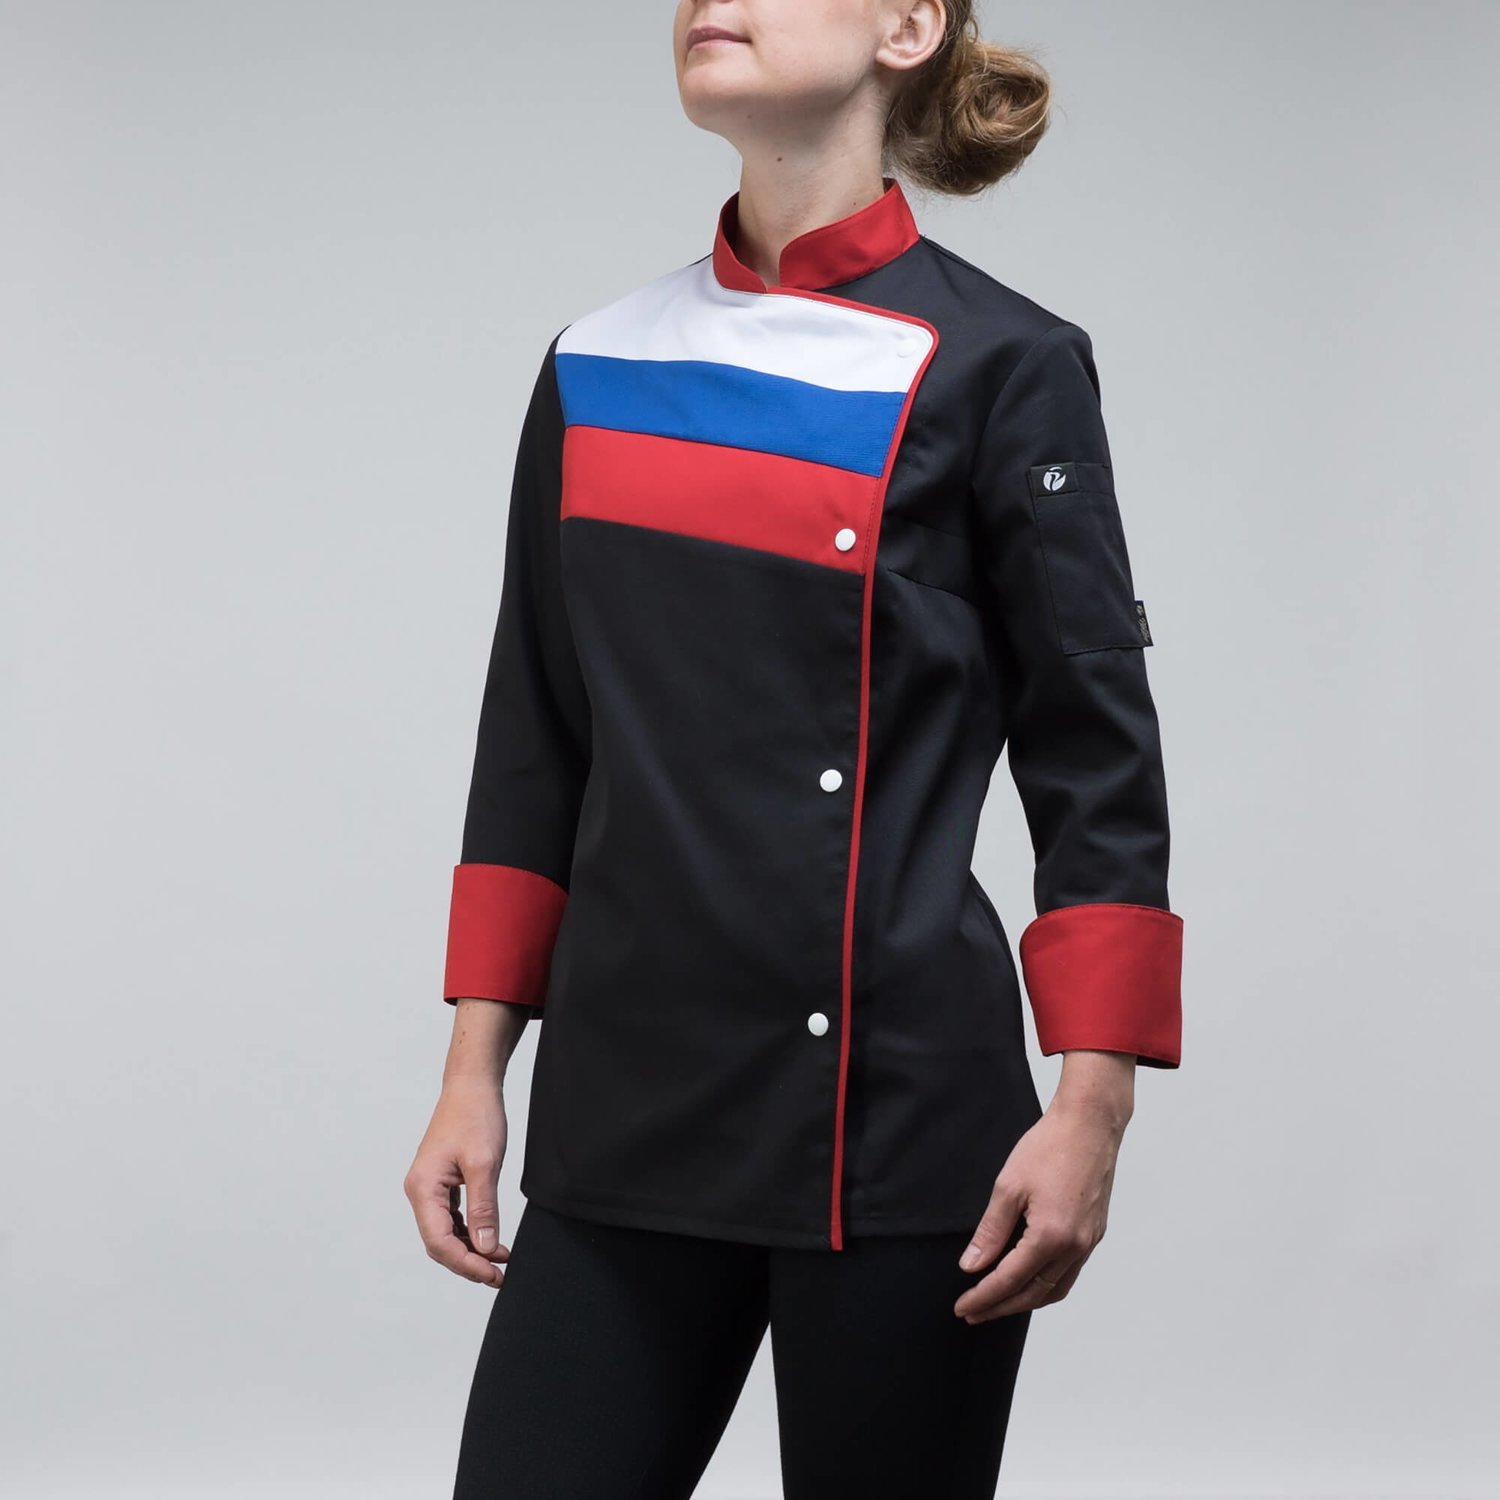 590RB - CHEF'S JACKET